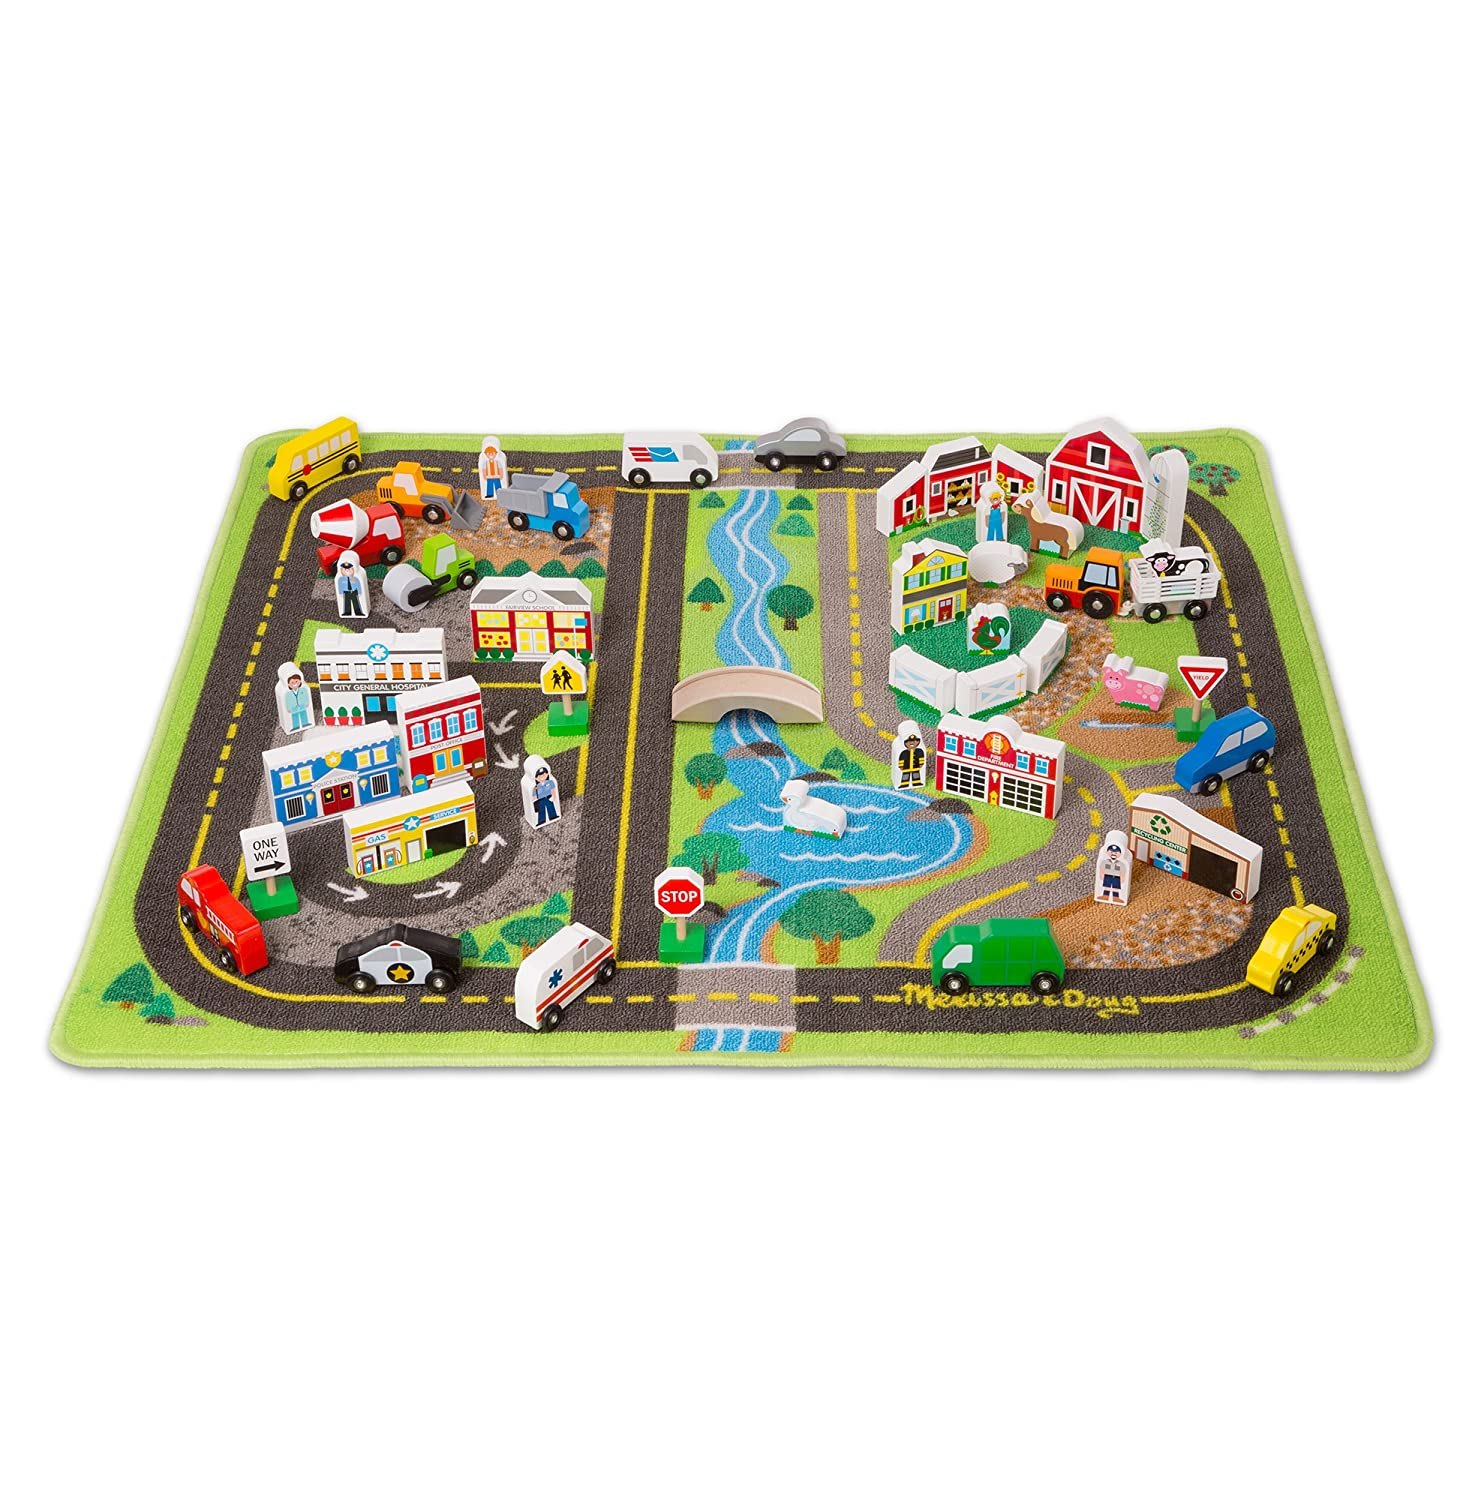 Melissa & Doug Deluxe Activity Road Rug Play Set with 49 Wooden Vehicles and Play Pieces Melissa and Doug 5195